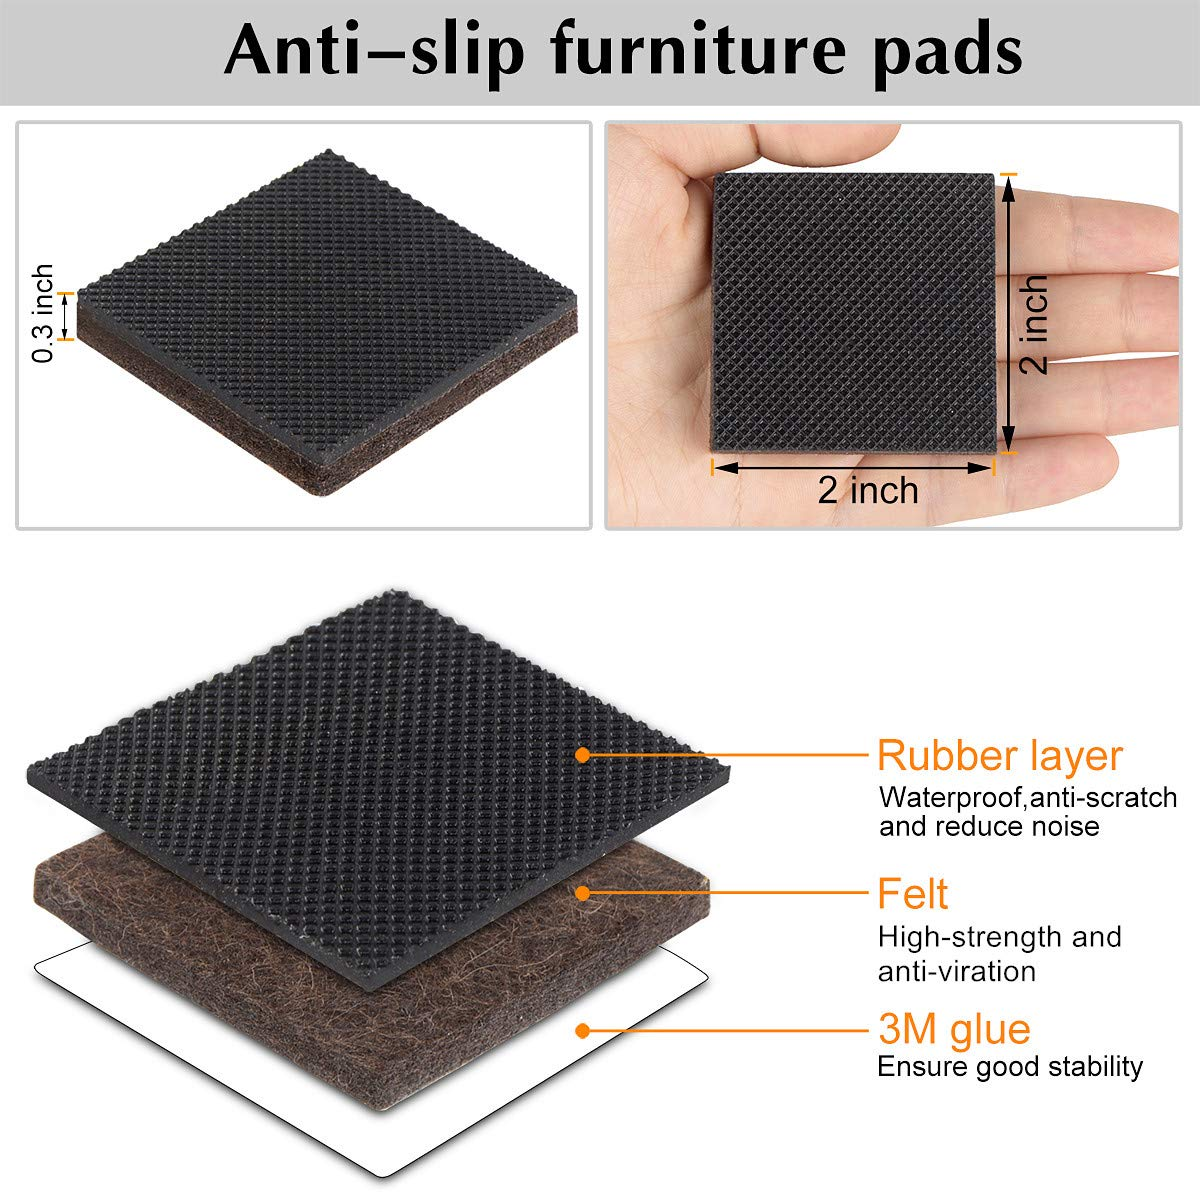 FurniMate PADS-00003A Grippers Self Adhesive Square Rubber Anti Scratch Protectors Stopper on Hardwood Wood Floor in a Storage Case 20 Pieces 2'' Non Slip Furniture Pad, 2 inch, Funiture by FurniMate (Image #2)